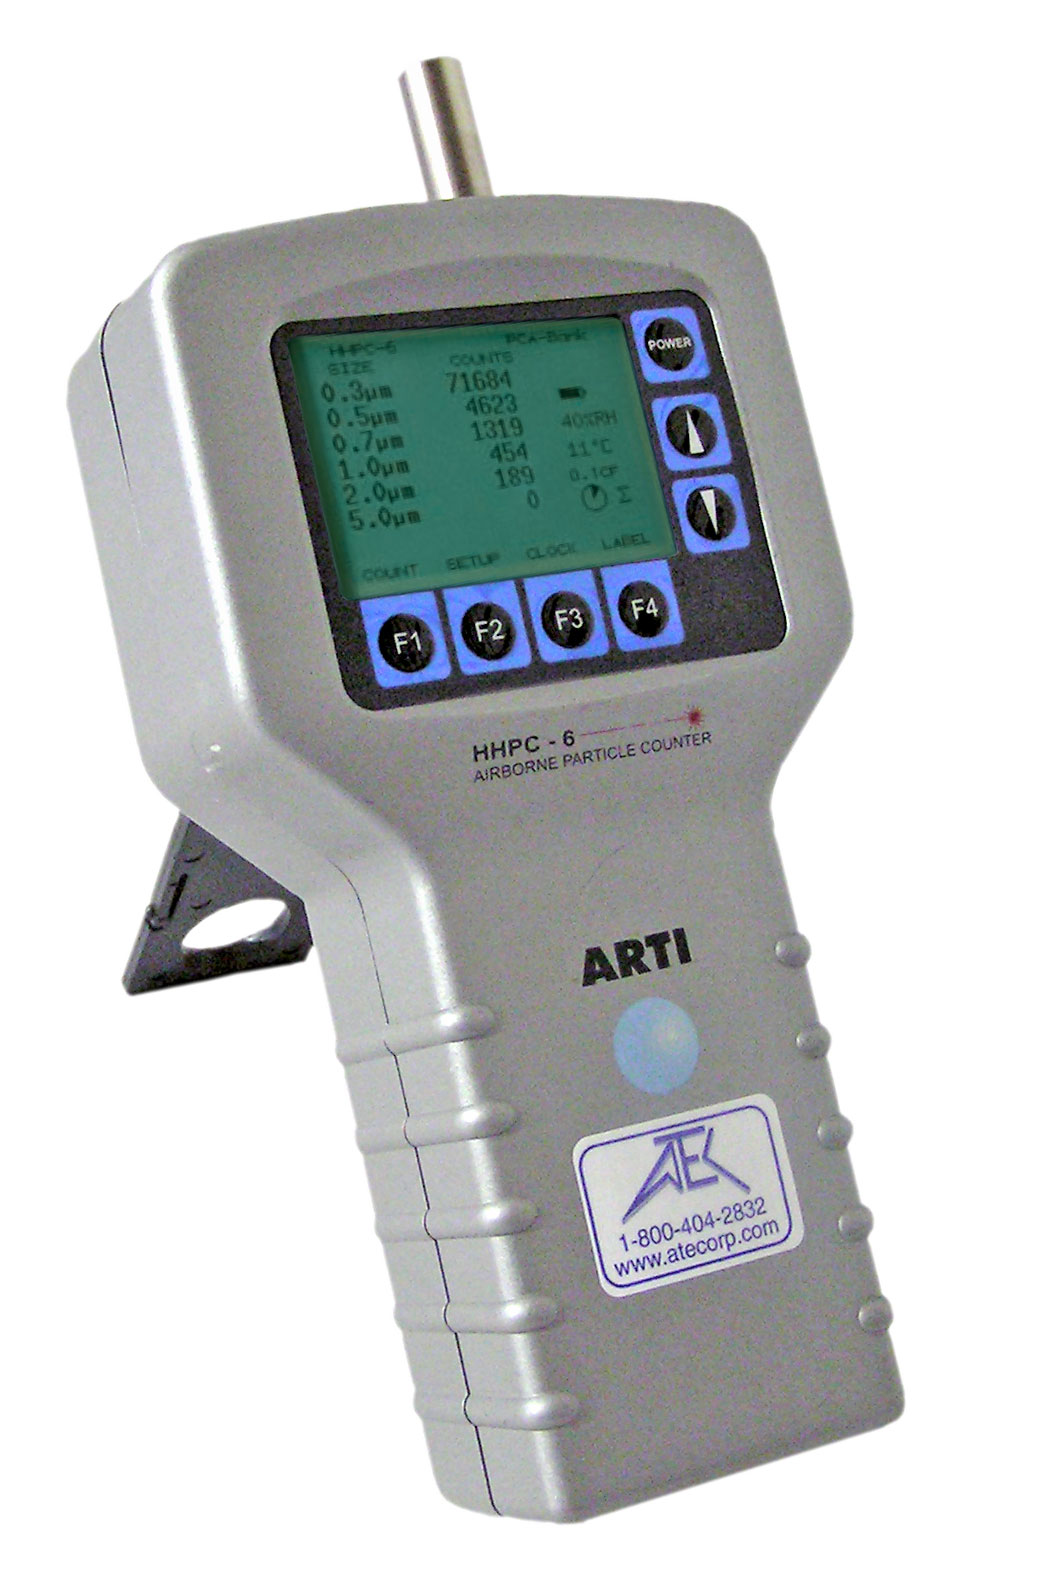 ARTI/Met One HHPC-6 Mobile Particle Counter